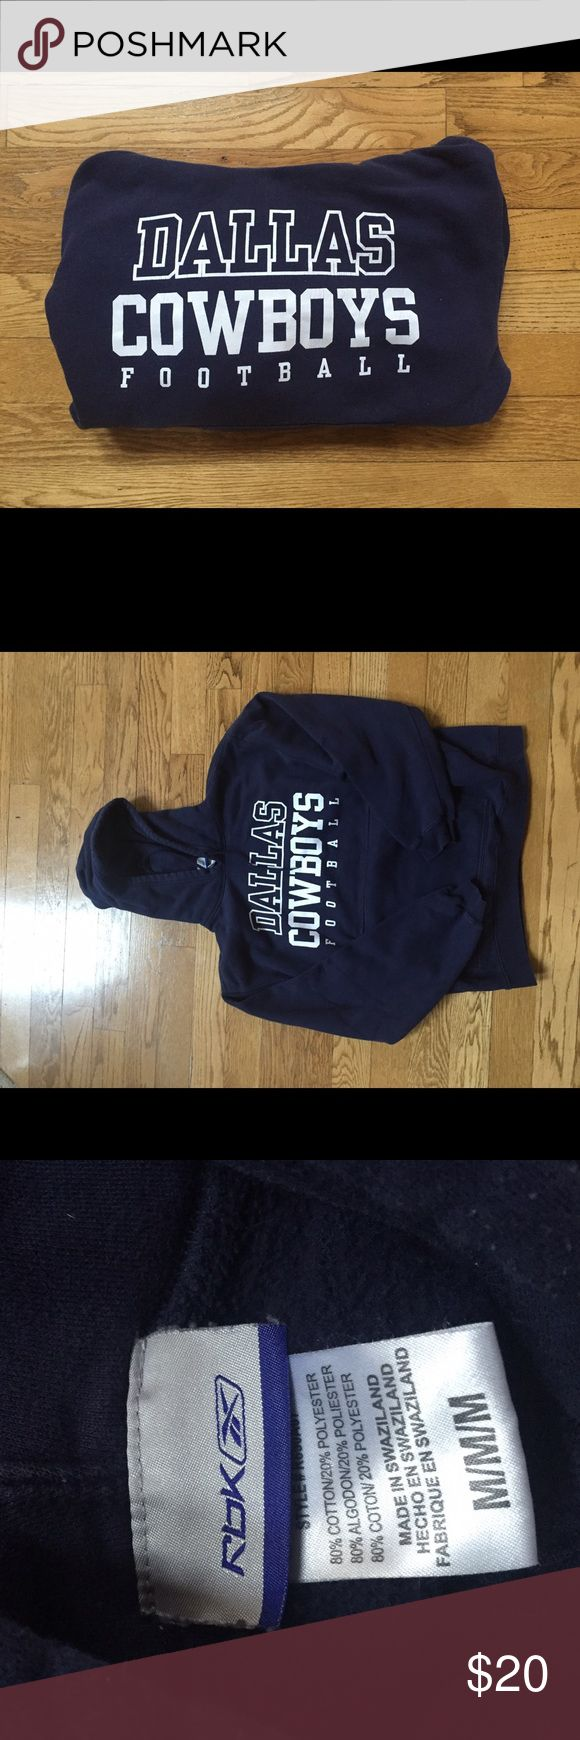 Dalas Cowboys Hoodie NFL Super soft and cozy. Would be a great gift for a fan. Size medium. NFL Tops Sweatshirts & Hoodies